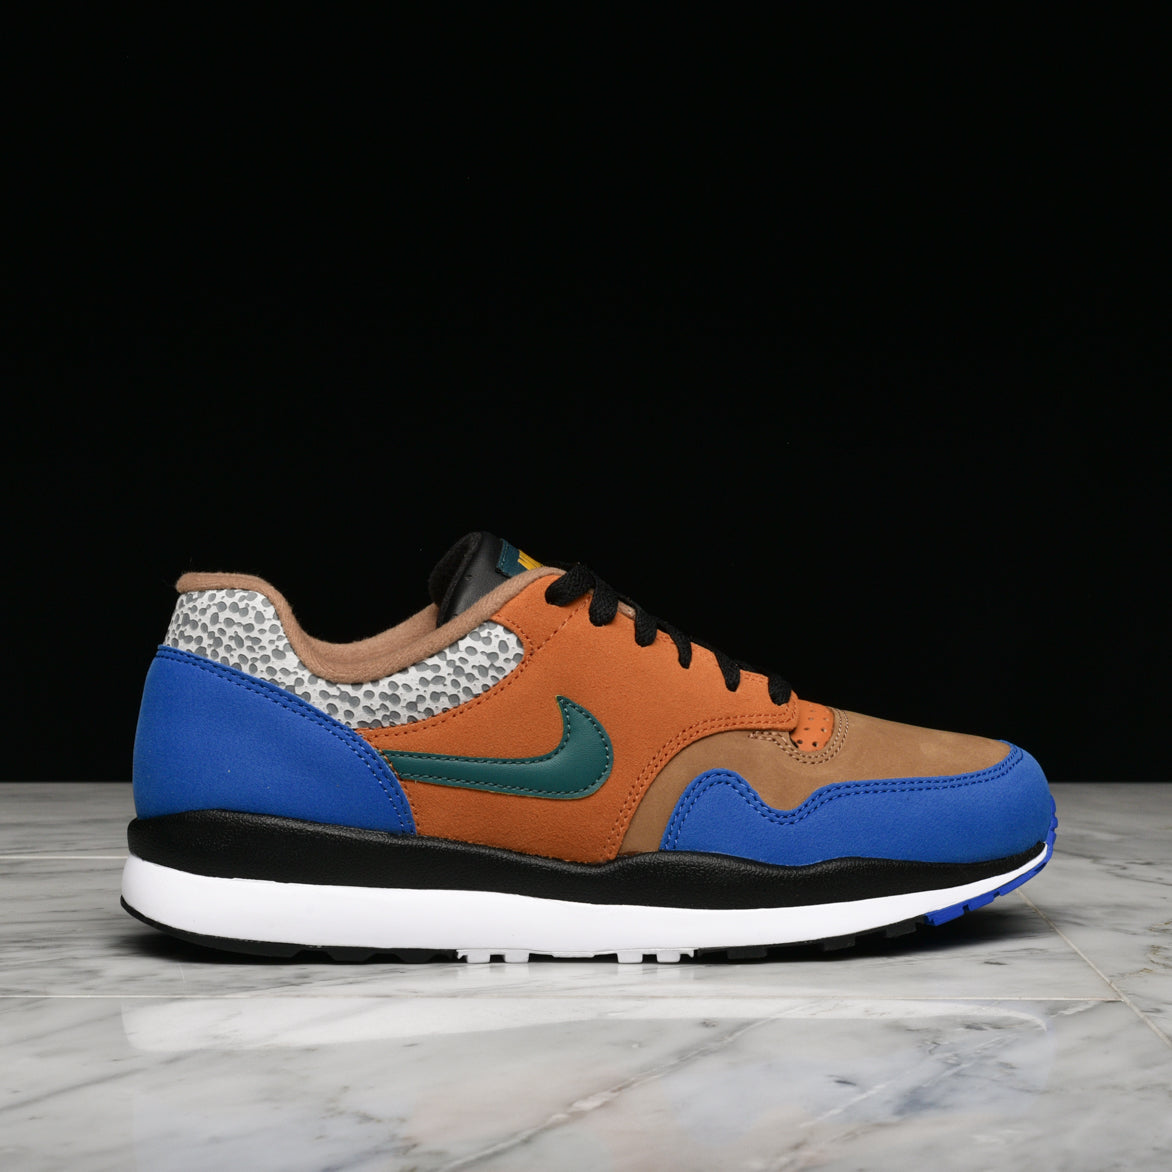 AIR SAFARI SE SP19 MONARCH RAINFOREST FLAX